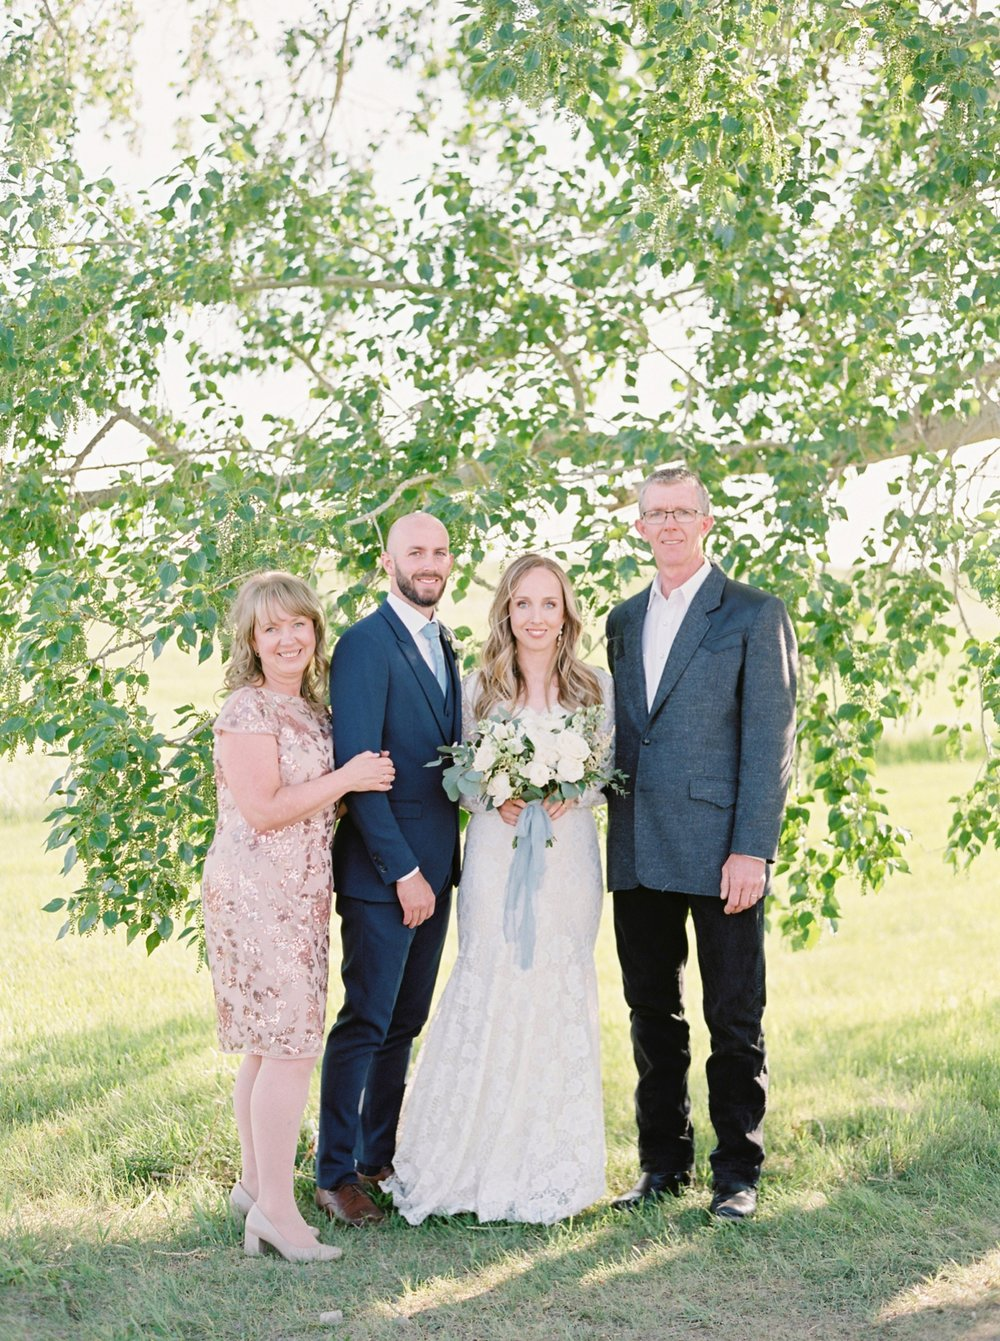 Calgary wedding photographers | The Gathered Farm Wedding | Justine milton fine art film photographer | family portaits